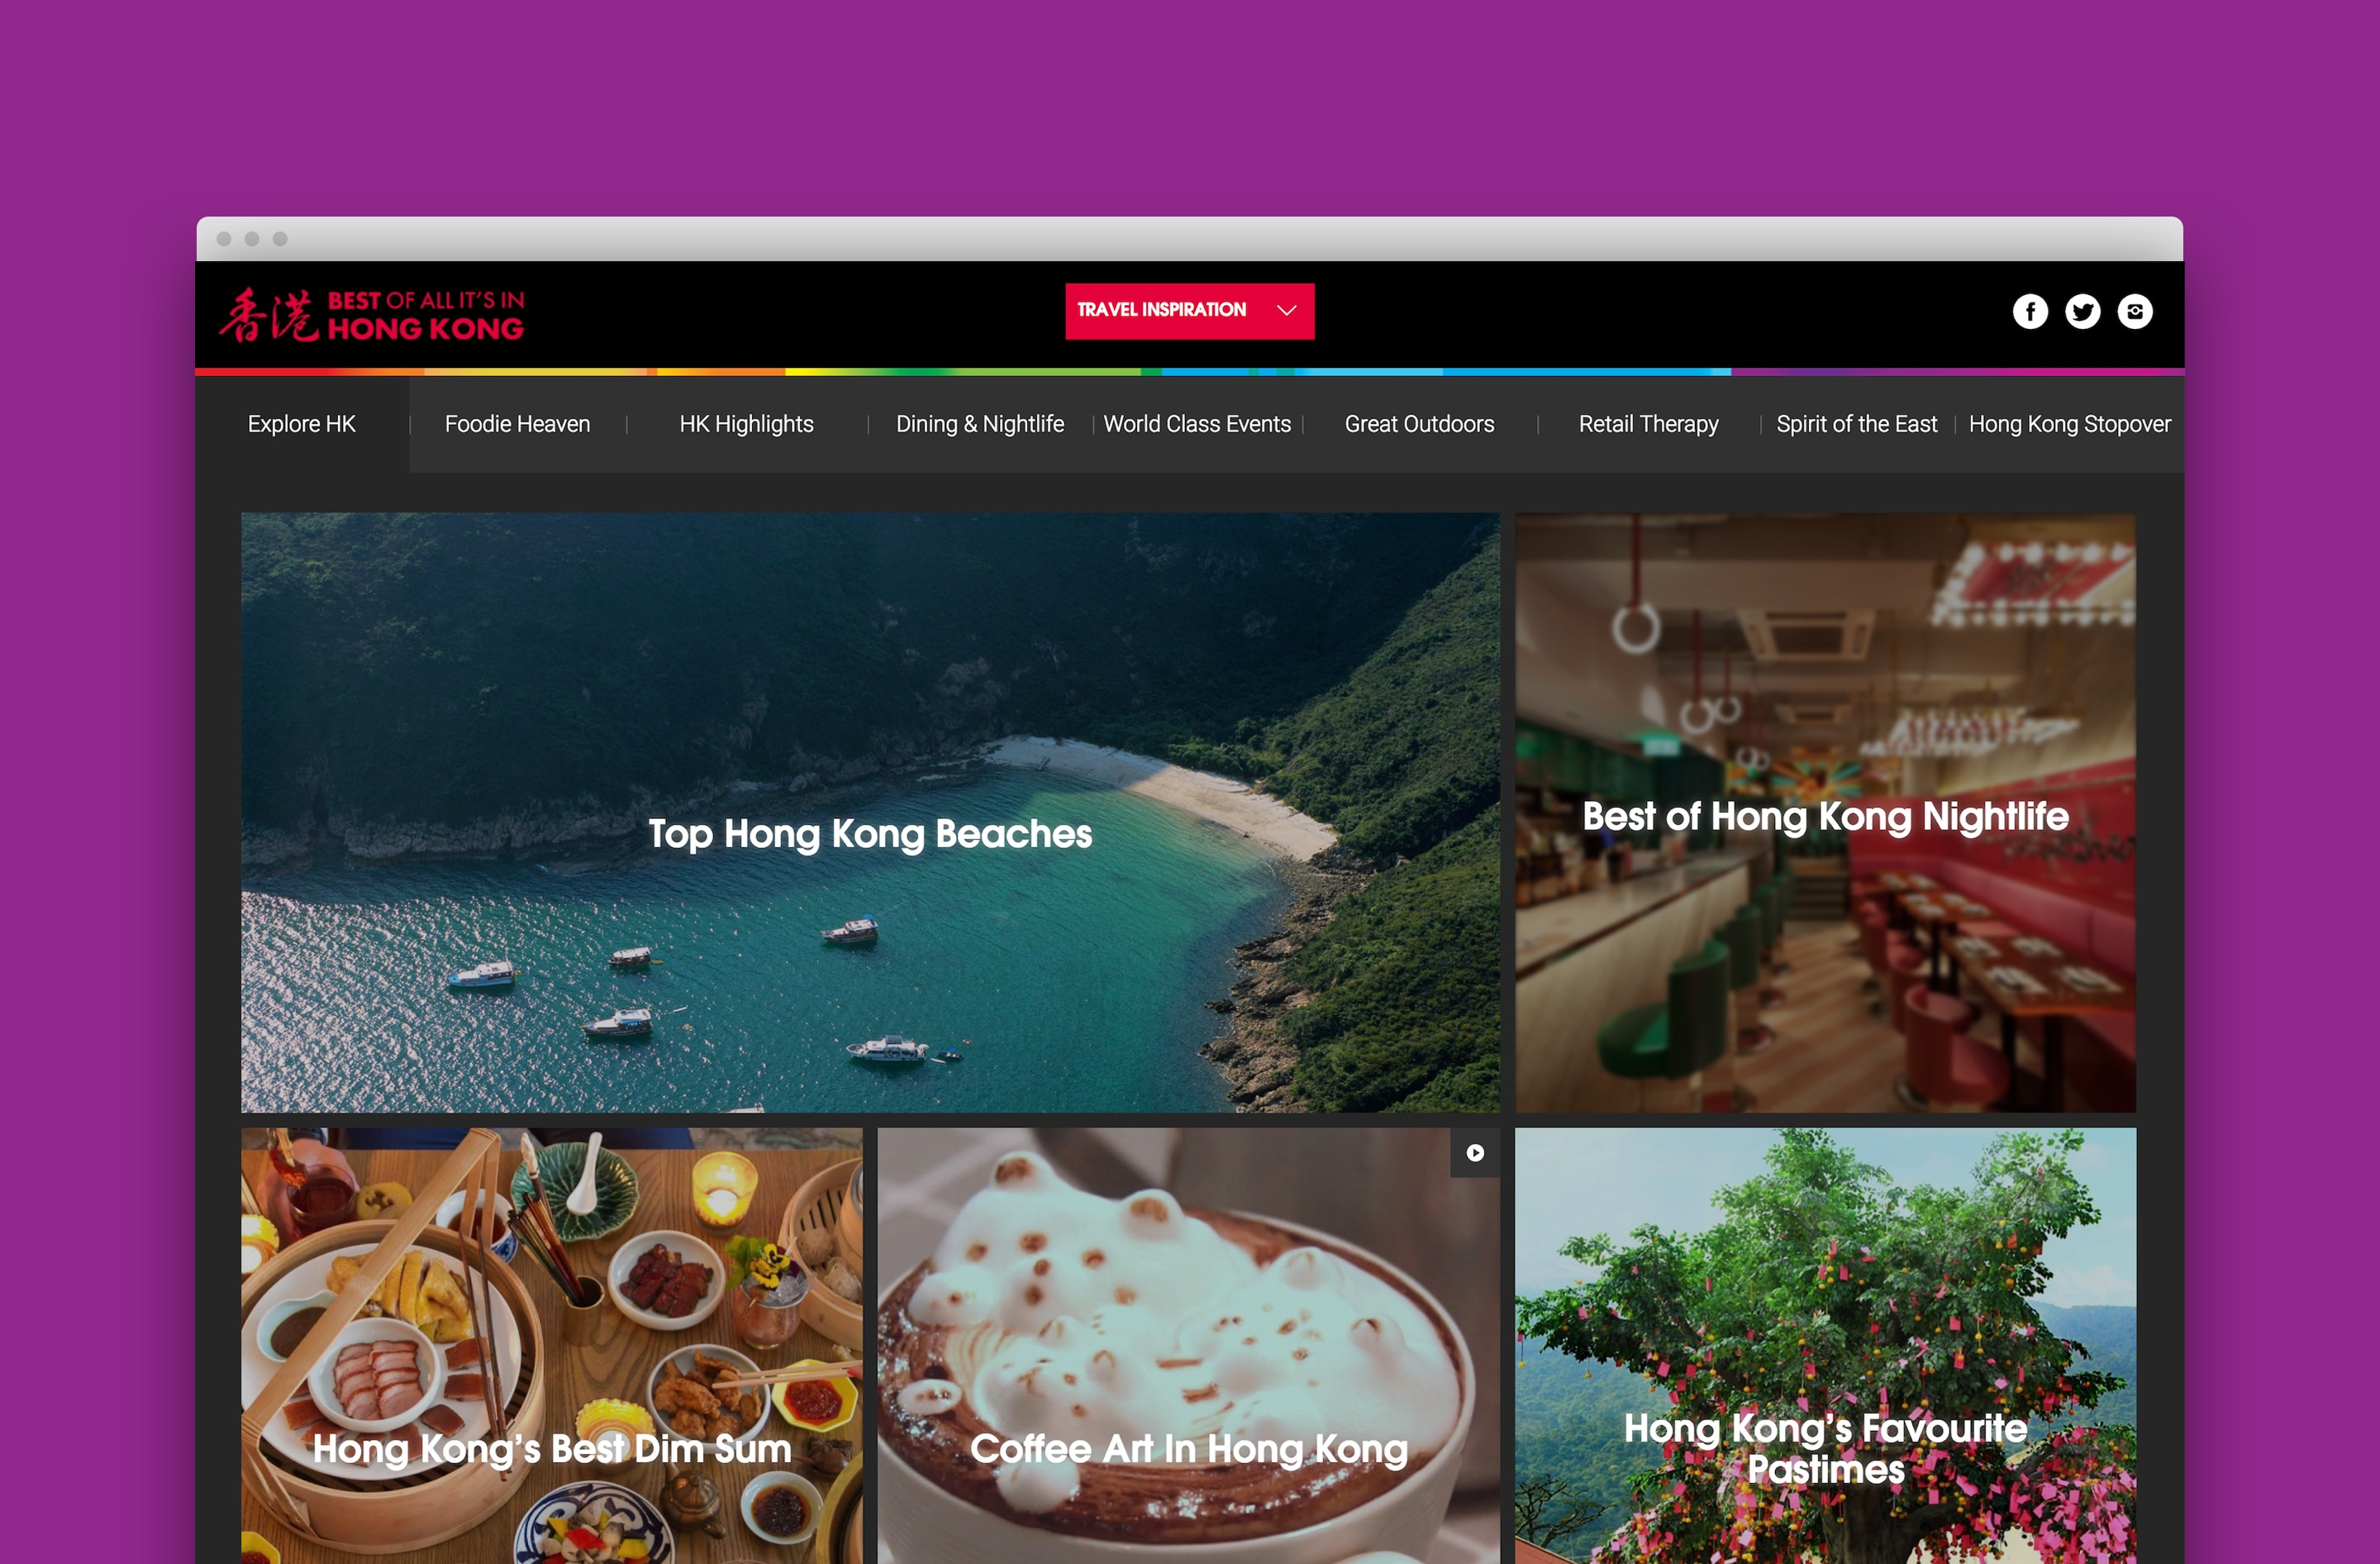 View our case study with the Hong Kong Tourism Board